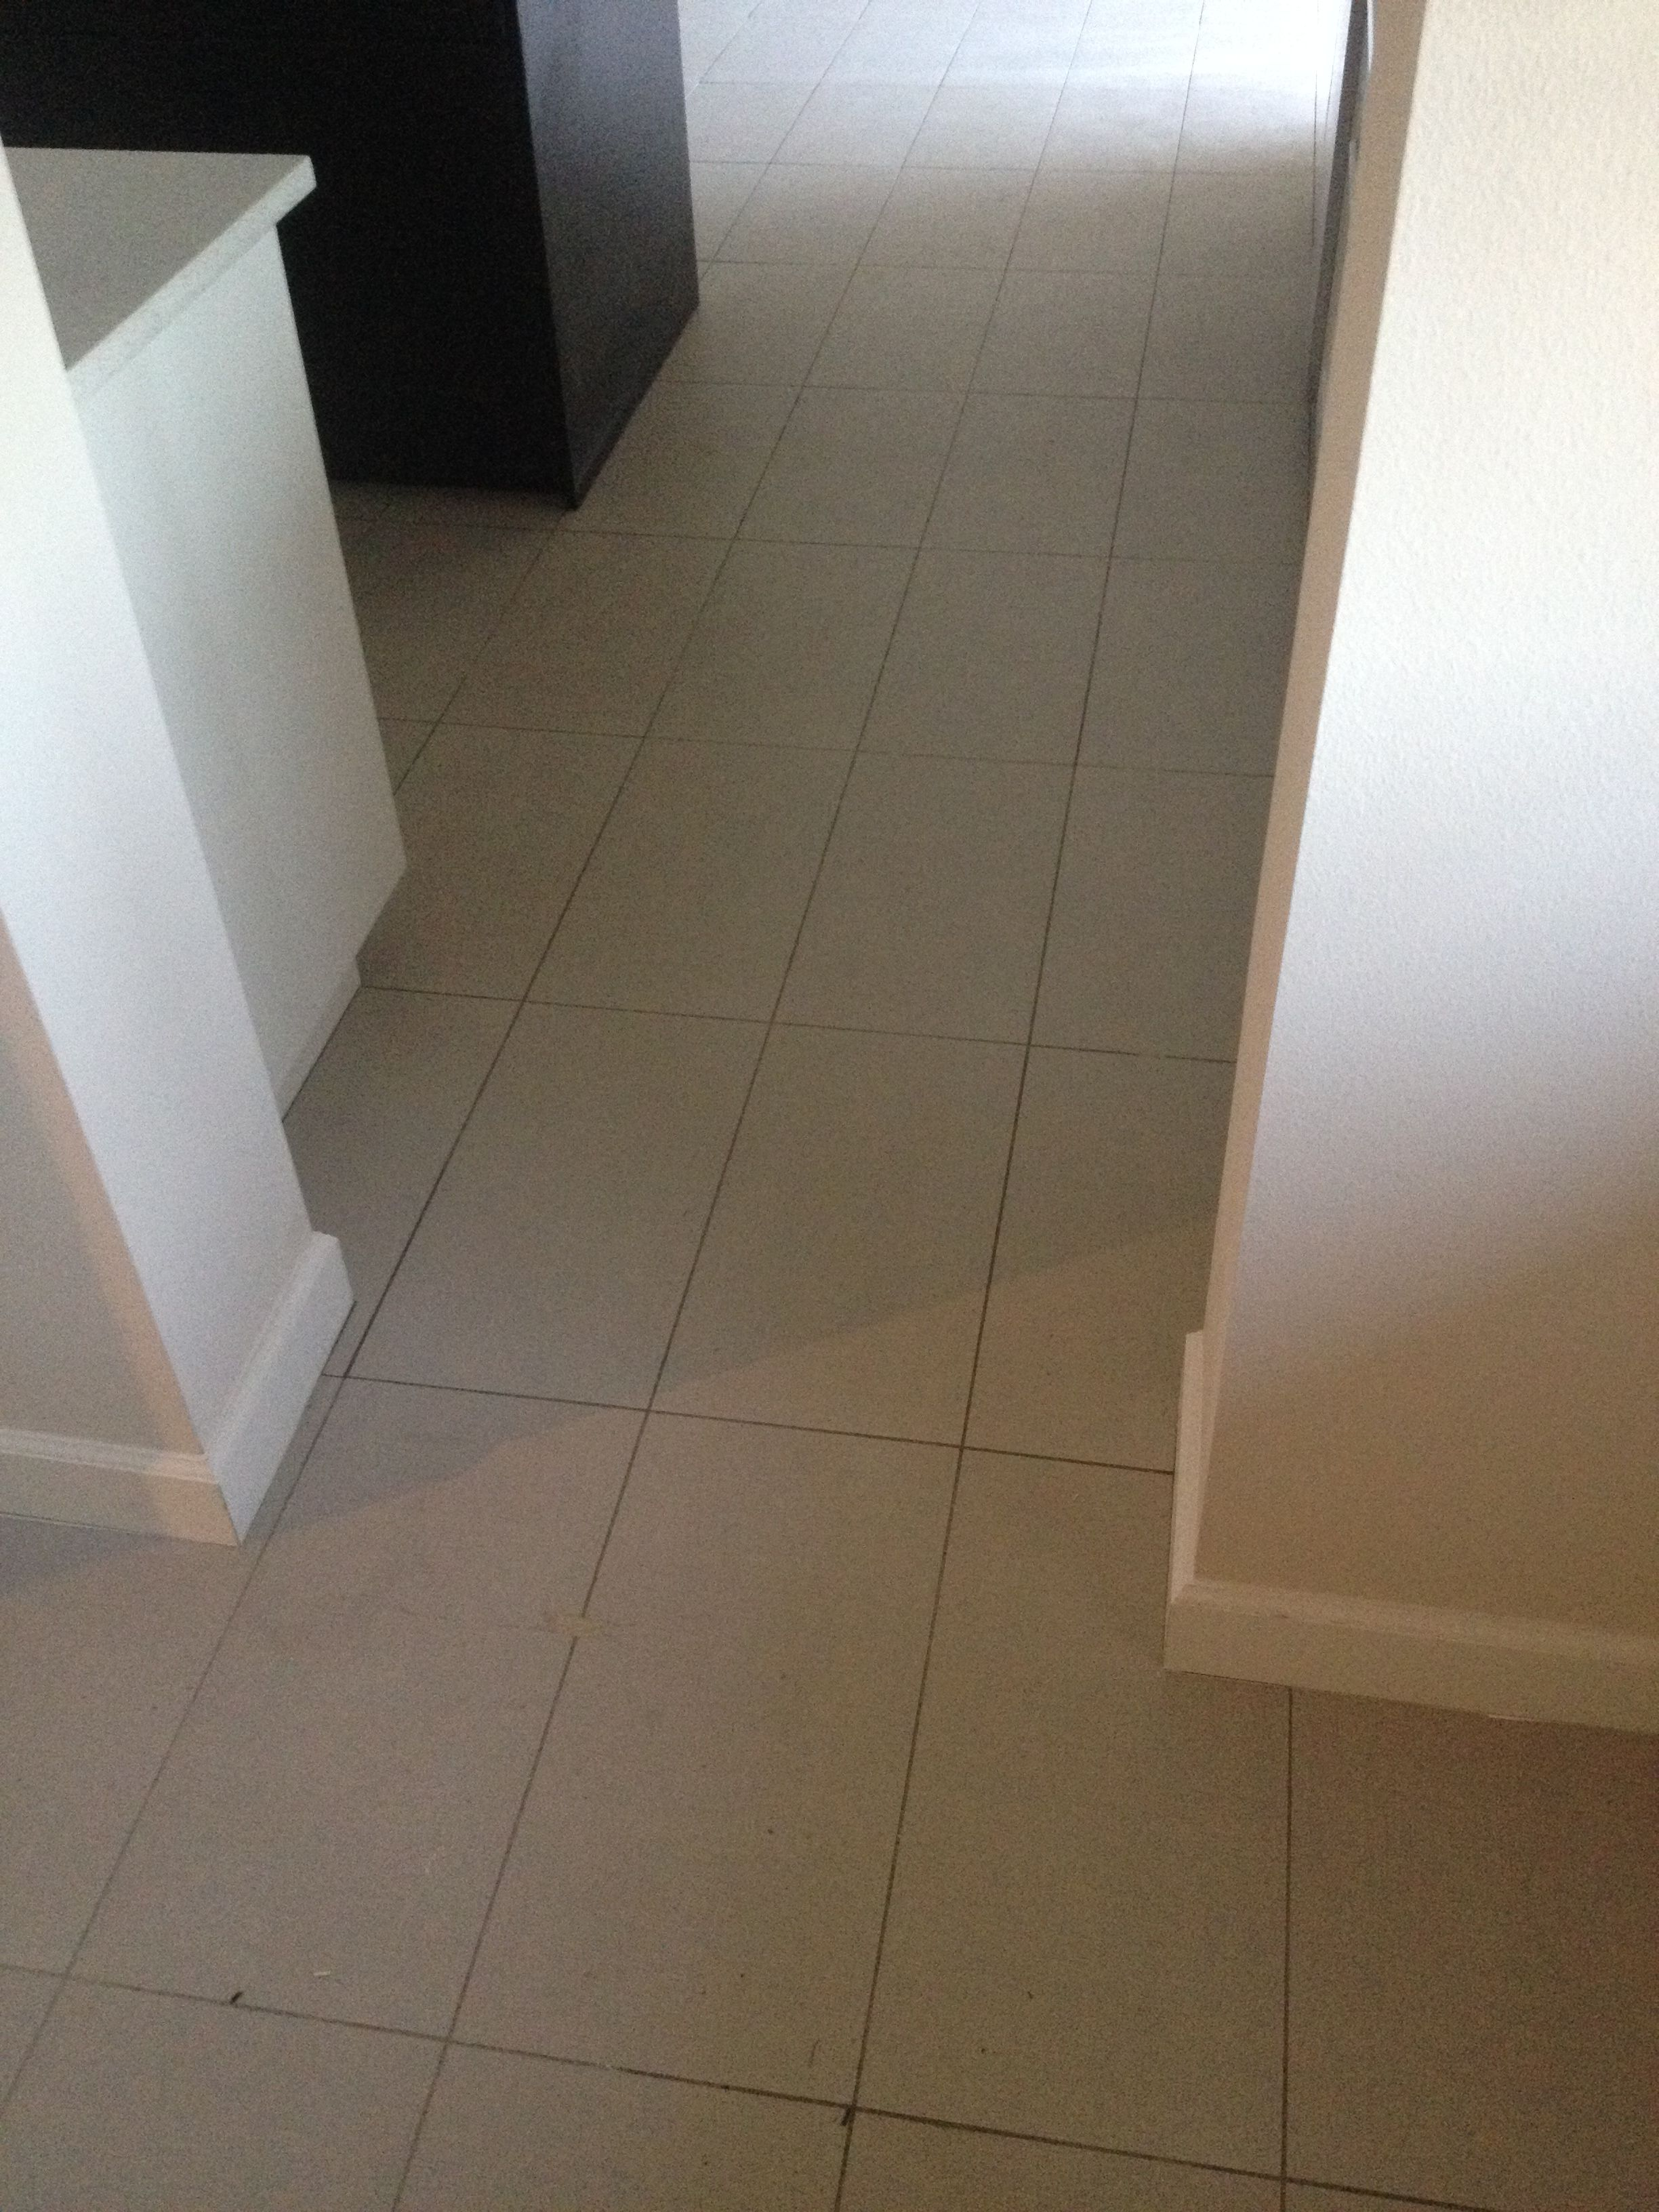 12 x 24 Porcelain Tile, straight lay, stack bond | Finishes ...